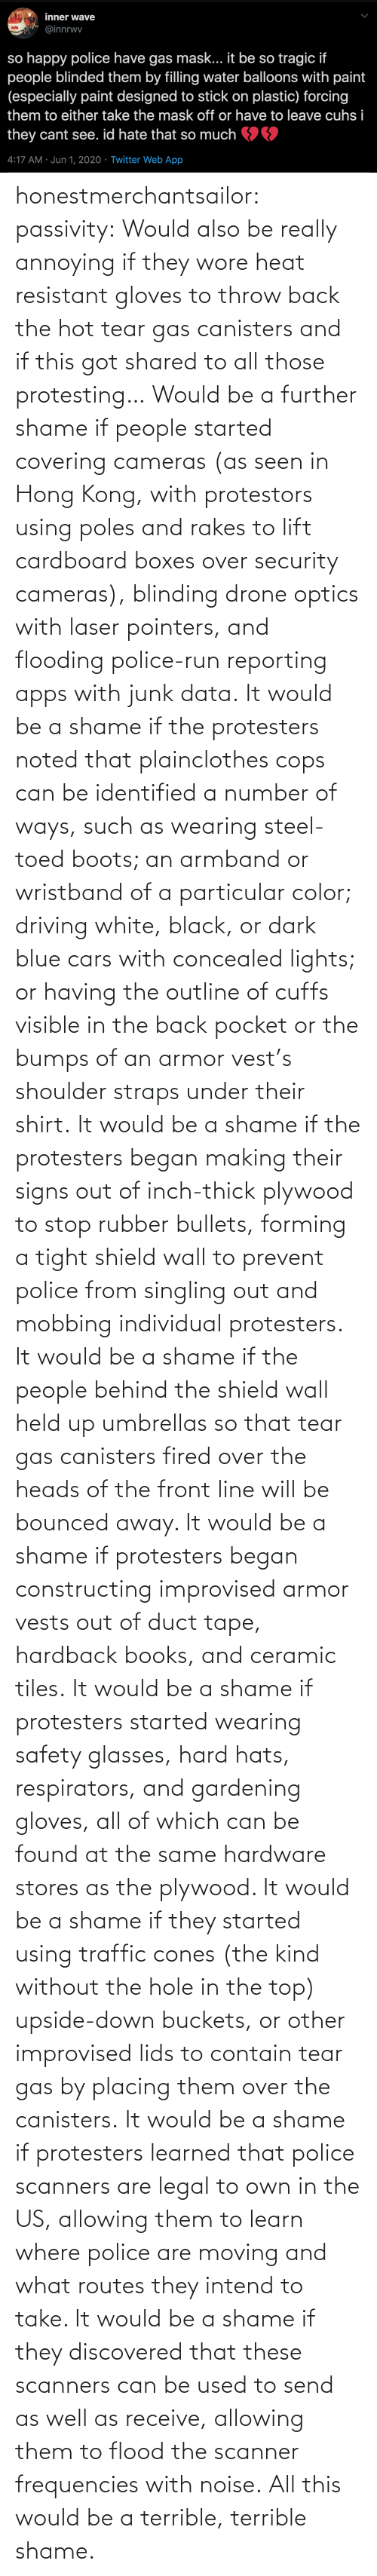 The People: honestmerchantsailor: passivity: Would also be really annoying if they wore heat resistant gloves to throw back the hot tear gas canisters and if this got shared to all those protesting… Would be a further shame if people started covering cameras (as seen in Hong Kong, with protestors using poles and rakes to lift cardboard boxes over security cameras), blinding drone optics with laser pointers, and flooding police-run reporting apps with junk data. It would be a shame if the protesters noted that plainclothes cops can be identified a number of ways, such as wearing steel-toed boots; an armband or wristband of a particular color; driving white, black, or dark blue cars with concealed lights; or having the outline of cuffs visible in the back pocket or the bumps of an armor vest's shoulder straps under their shirt. It would be a shame if the protesters began making their signs out of inch-thick plywood to stop rubber bullets, forming a tight shield wall to prevent police from singling out and mobbing individual protesters. It would be a shame if the people behind the shield wall held up umbrellas so that tear gas canisters fired over the heads of the front line will be bounced away. It would be a shame if protesters began constructing improvised armor vests out of duct tape, hardback books, and ceramic tiles. It would be a shame if protesters started wearing safety glasses, hard hats, respirators, and gardening gloves, all of which can be found at the same hardware stores as the plywood. It would be a shame if they started using traffic cones (the kind without the hole in the top) upside-down buckets, or other improvised lids to contain tear gas by placing them over the canisters. It would be a shame if protesters learned that police scanners are legal to own in the US, allowing them to learn where police are moving and what routes they intend to take. It would be a shame if they discovered that these scanners can be used to send as well as receive, allowing them to flood the scanner frequencies with noise. All this would be a terrible, terrible shame.